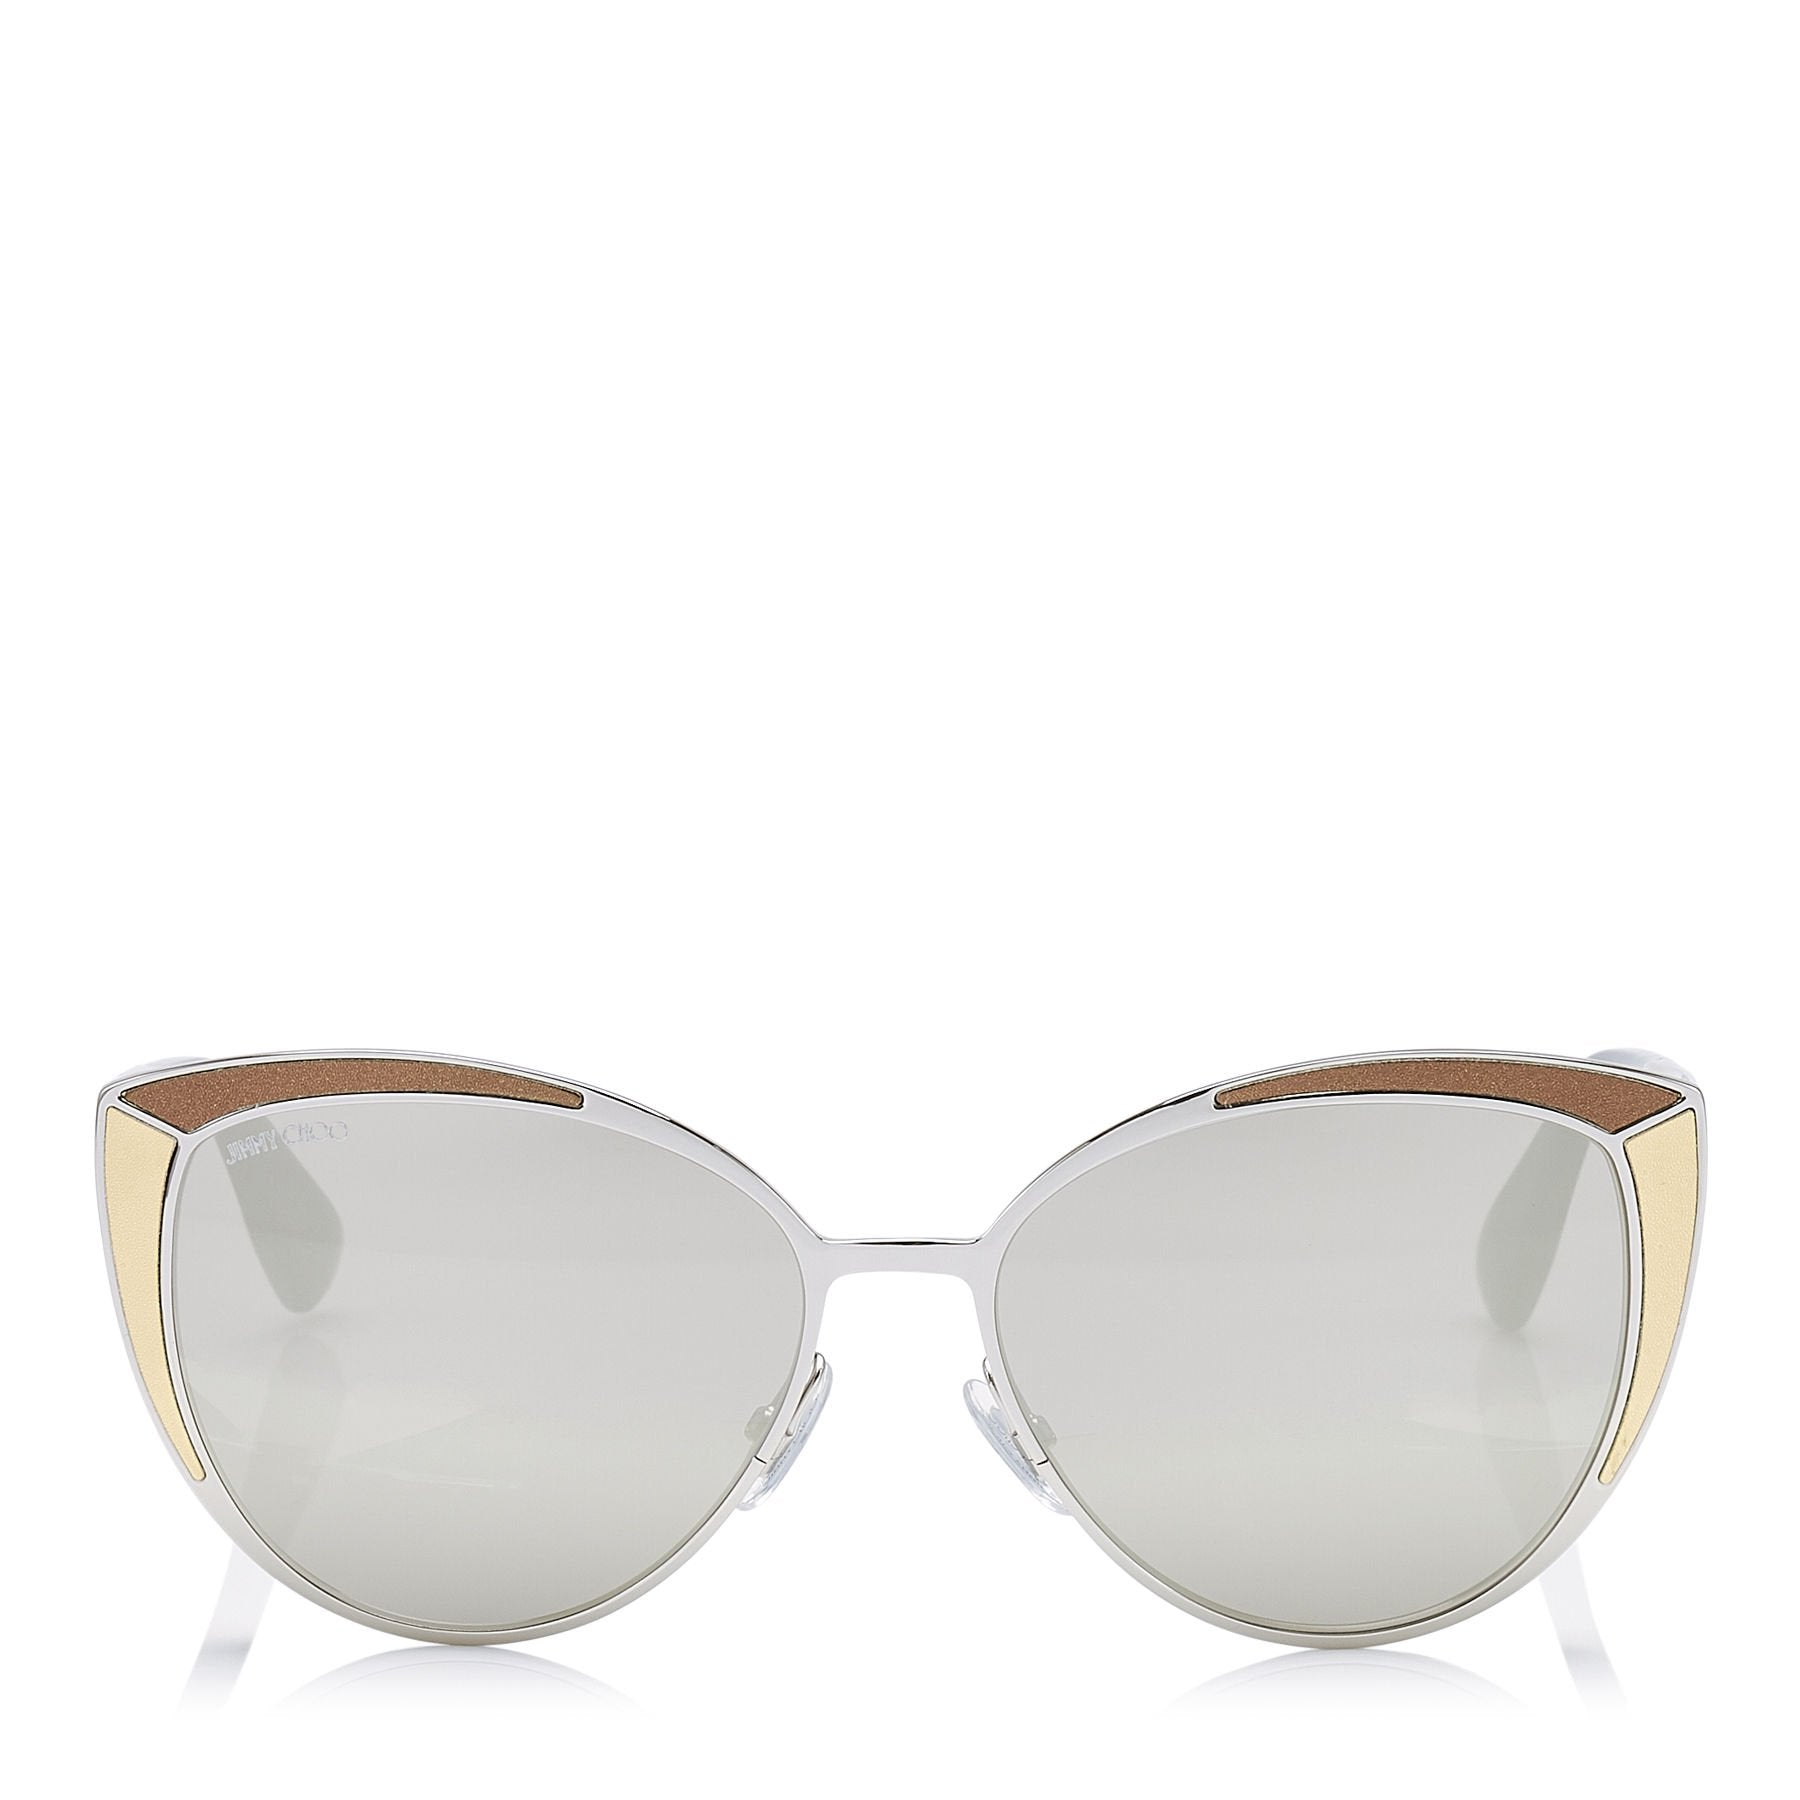 JIMMY CHOO Domi Metal Framed Cat Eye Sunglasses with Snakeskin Leather Detail ITEM NO. DOMIS56EVNE